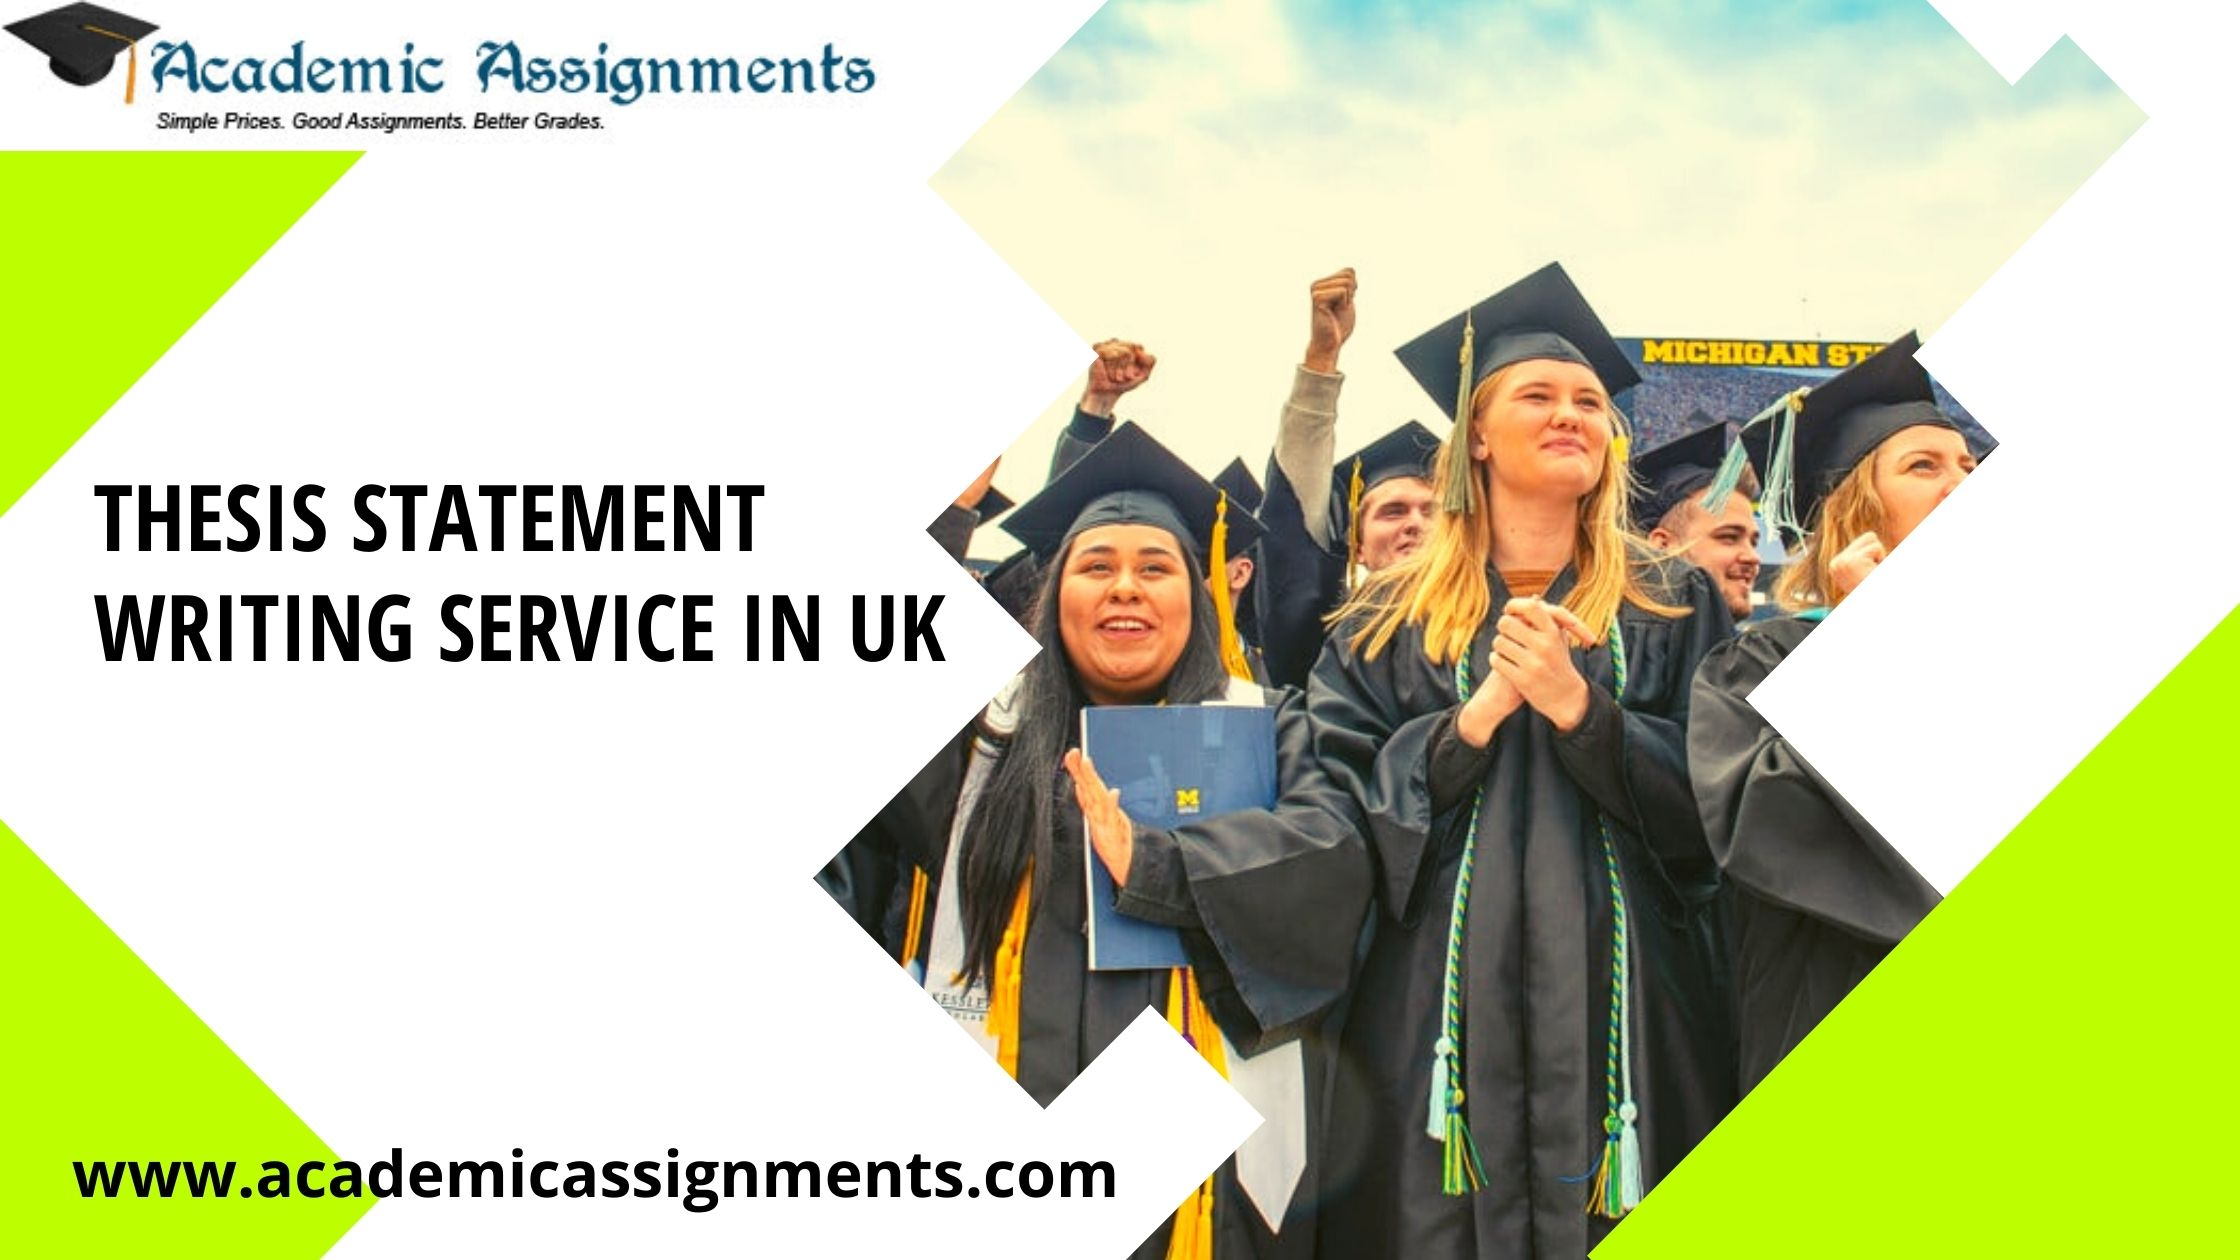 Thesis Statement Writing Service In UK